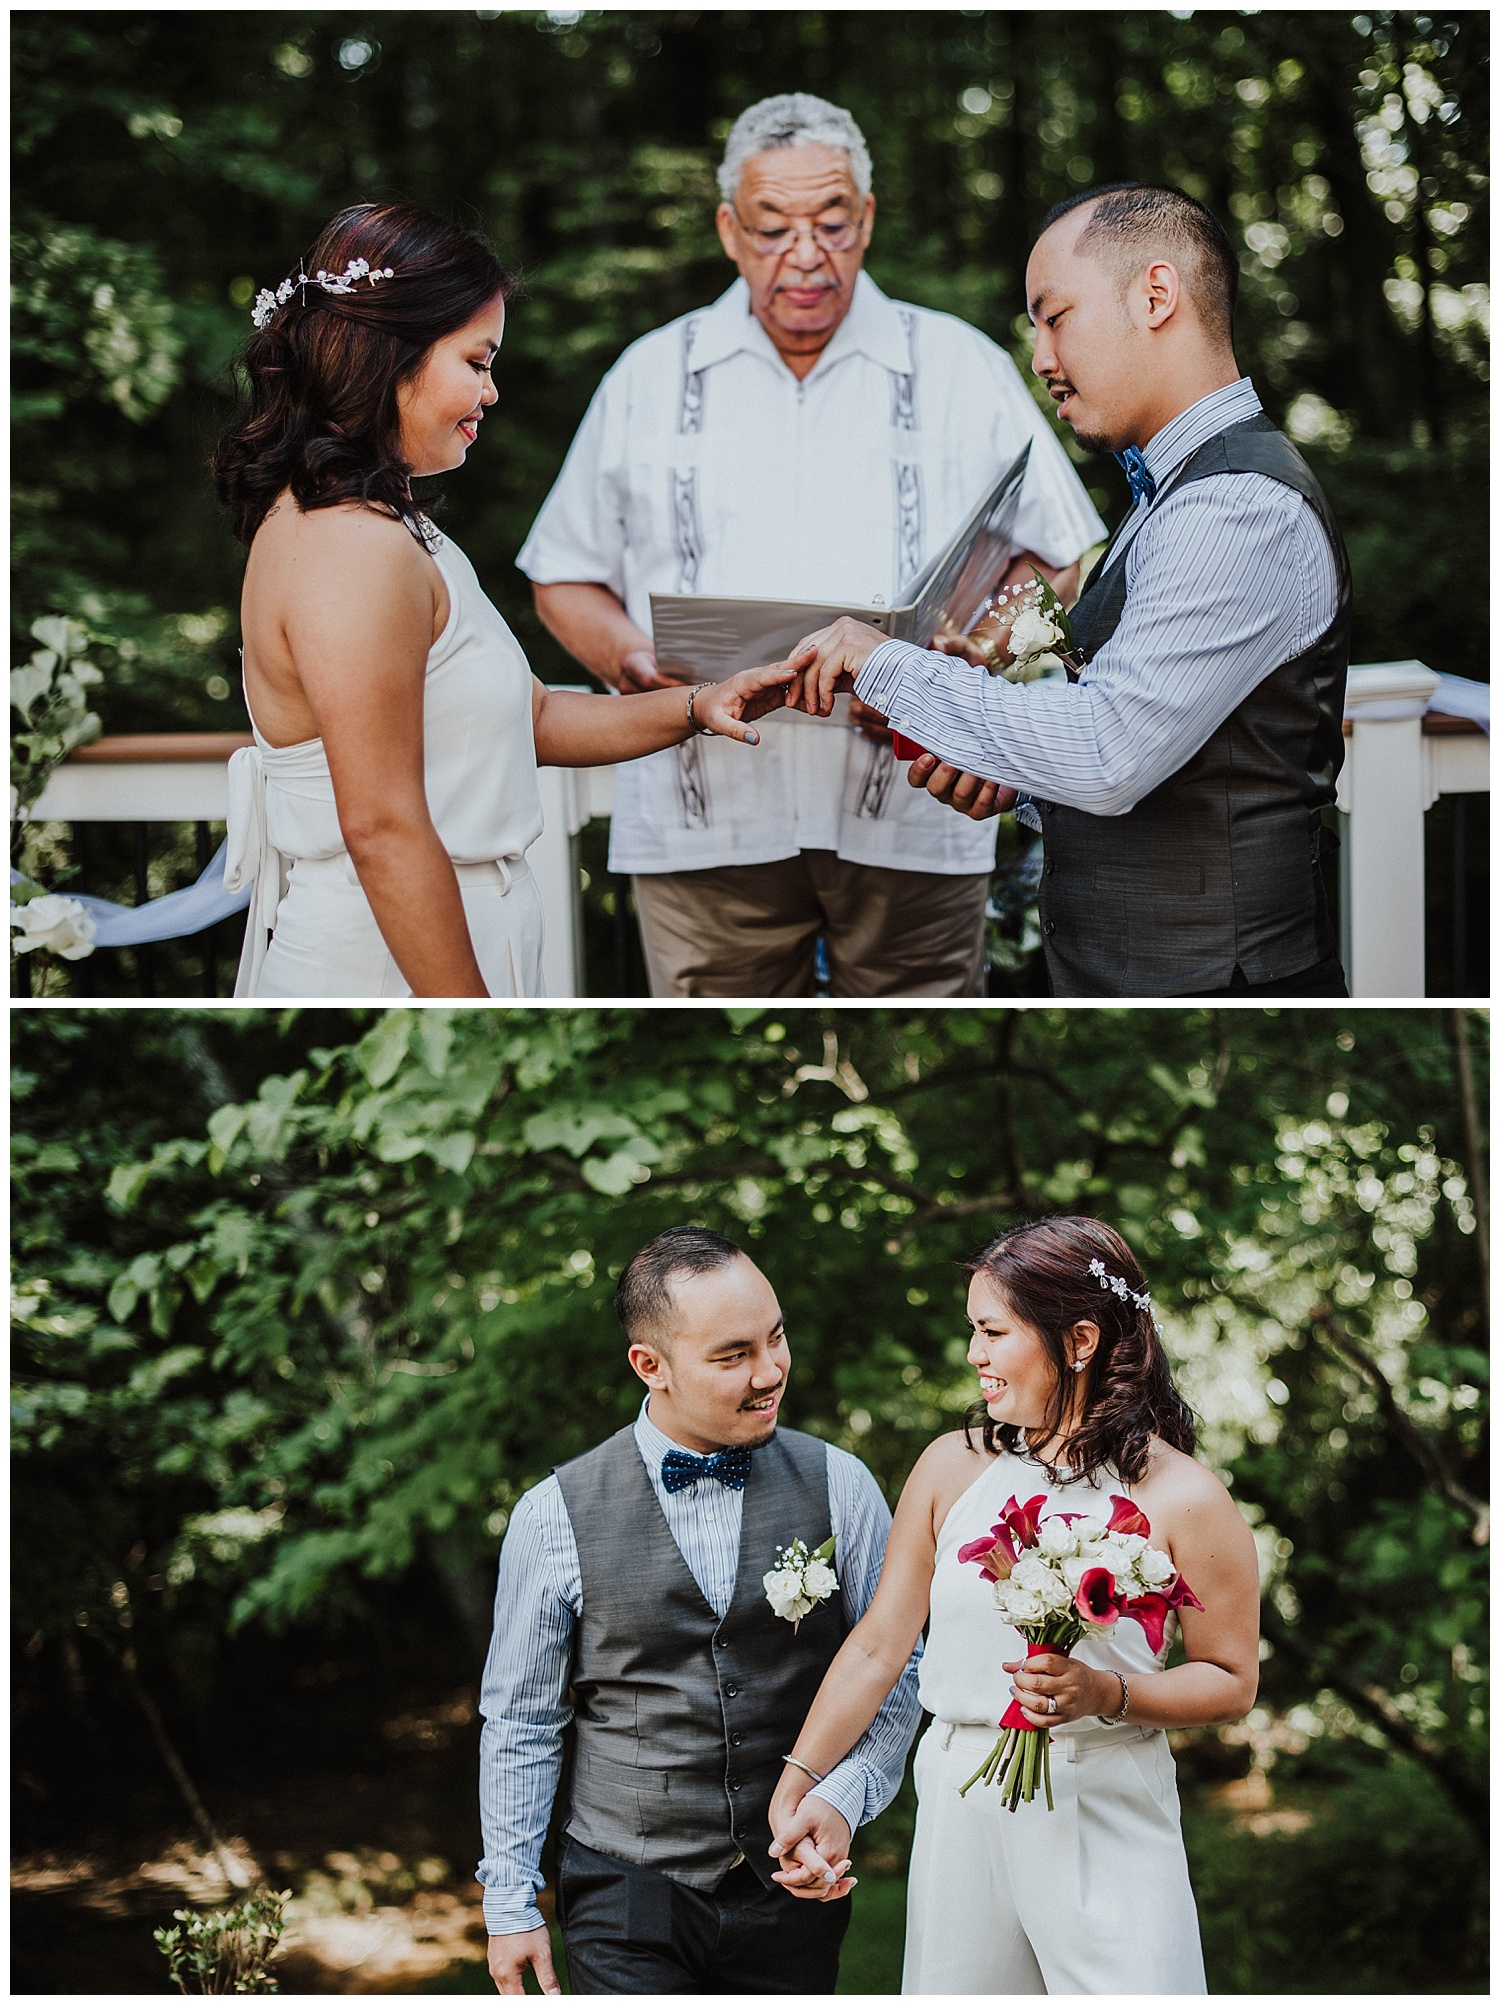 fairfax-intimate-wedding-backyard-secular-officiant.jpg